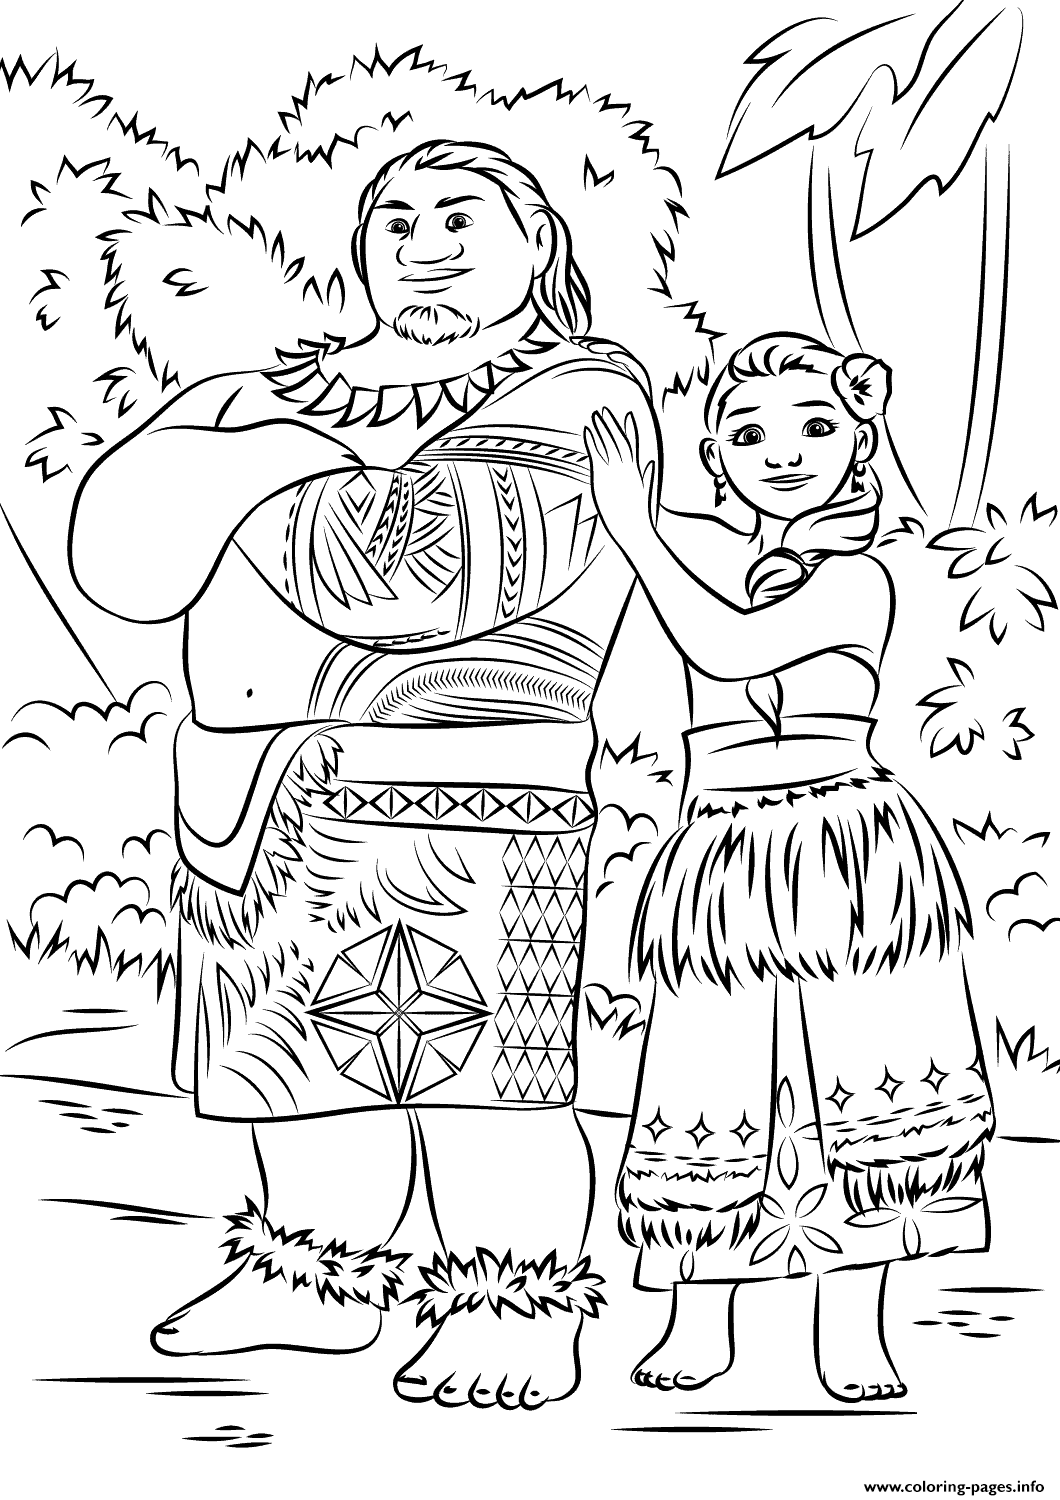 Print Tui And Sina From Moana Disney Coloring Pages Disney